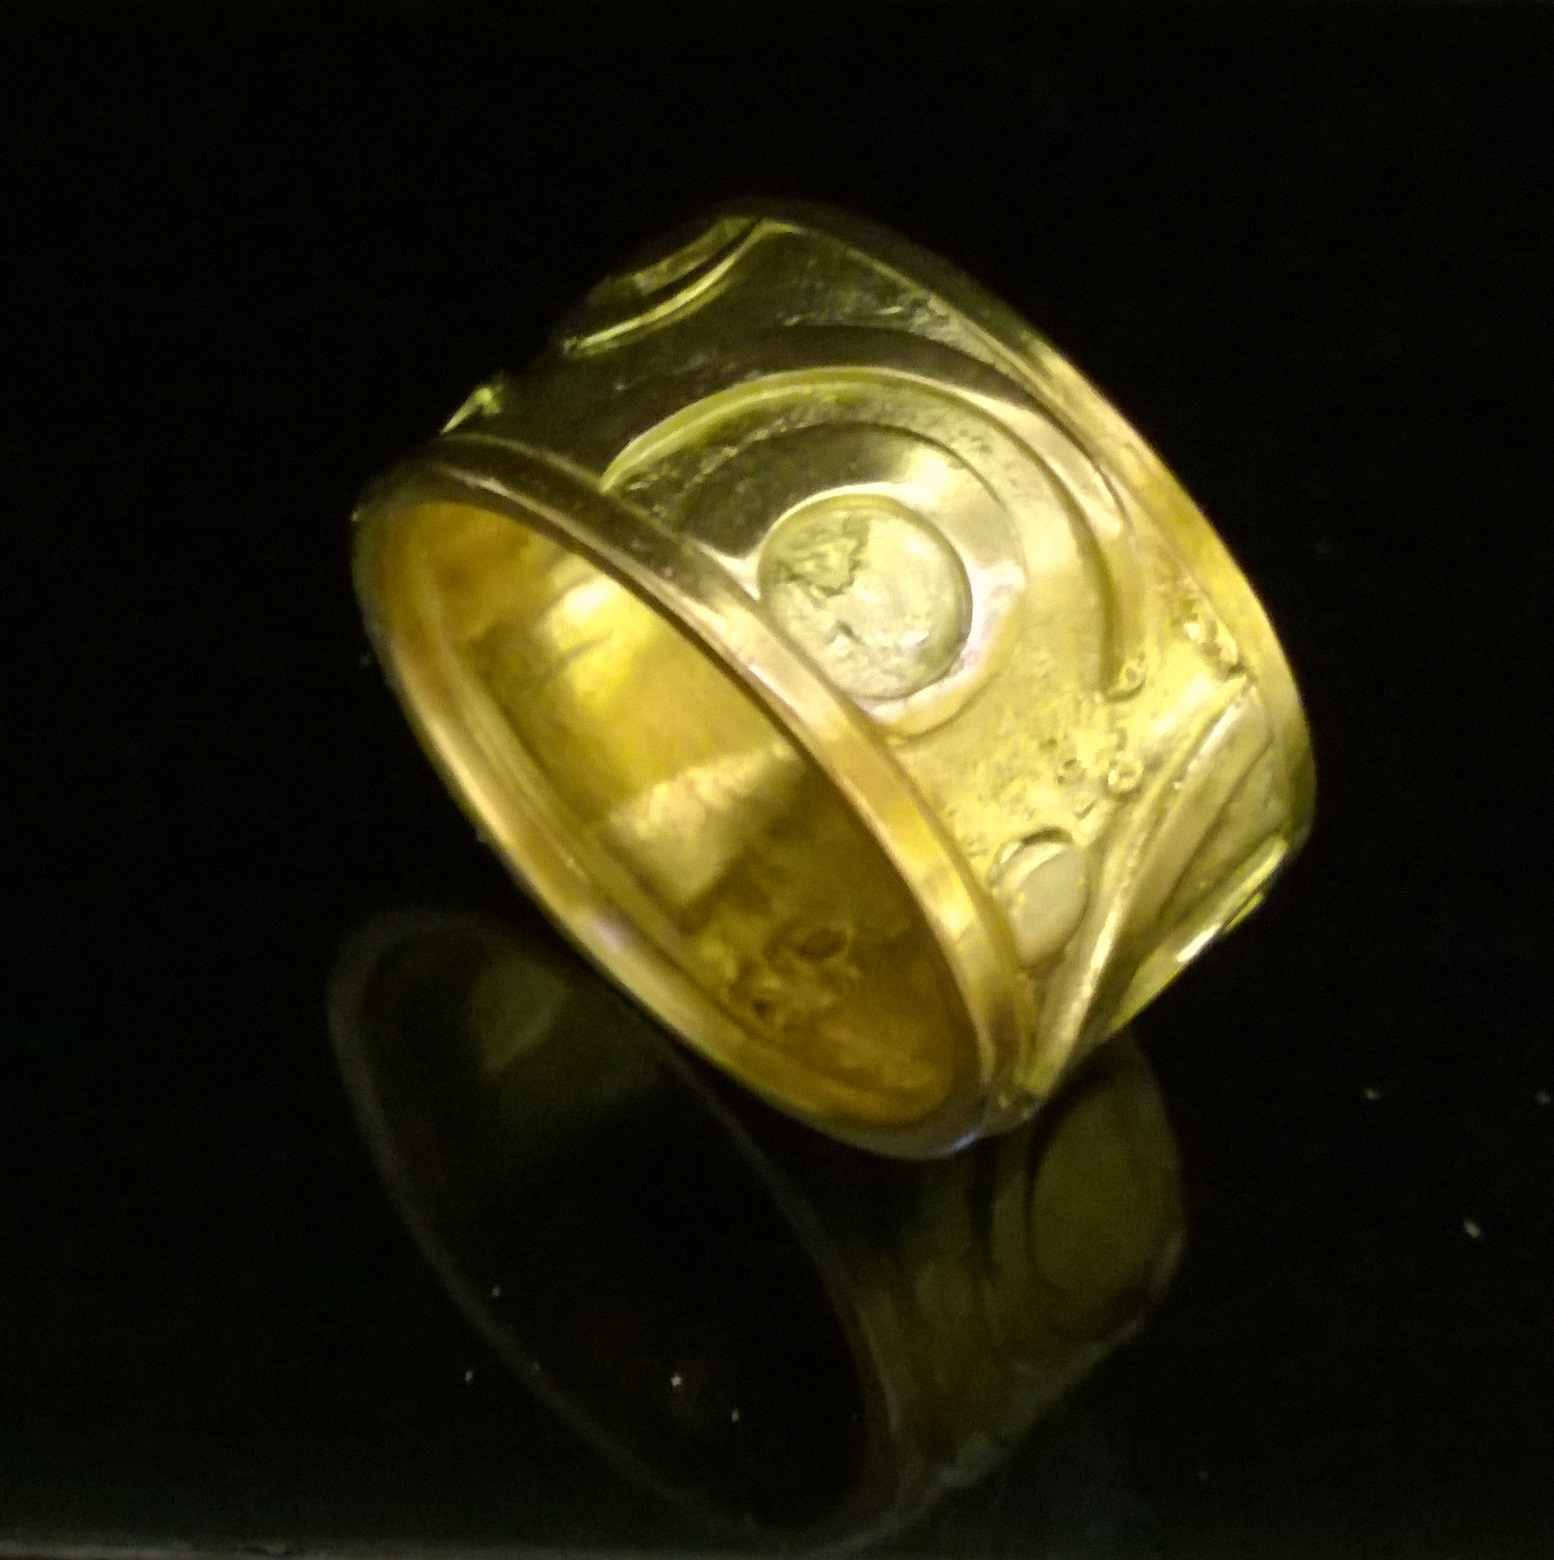 saints canal chronicles history street receive super rings bowl orleans new